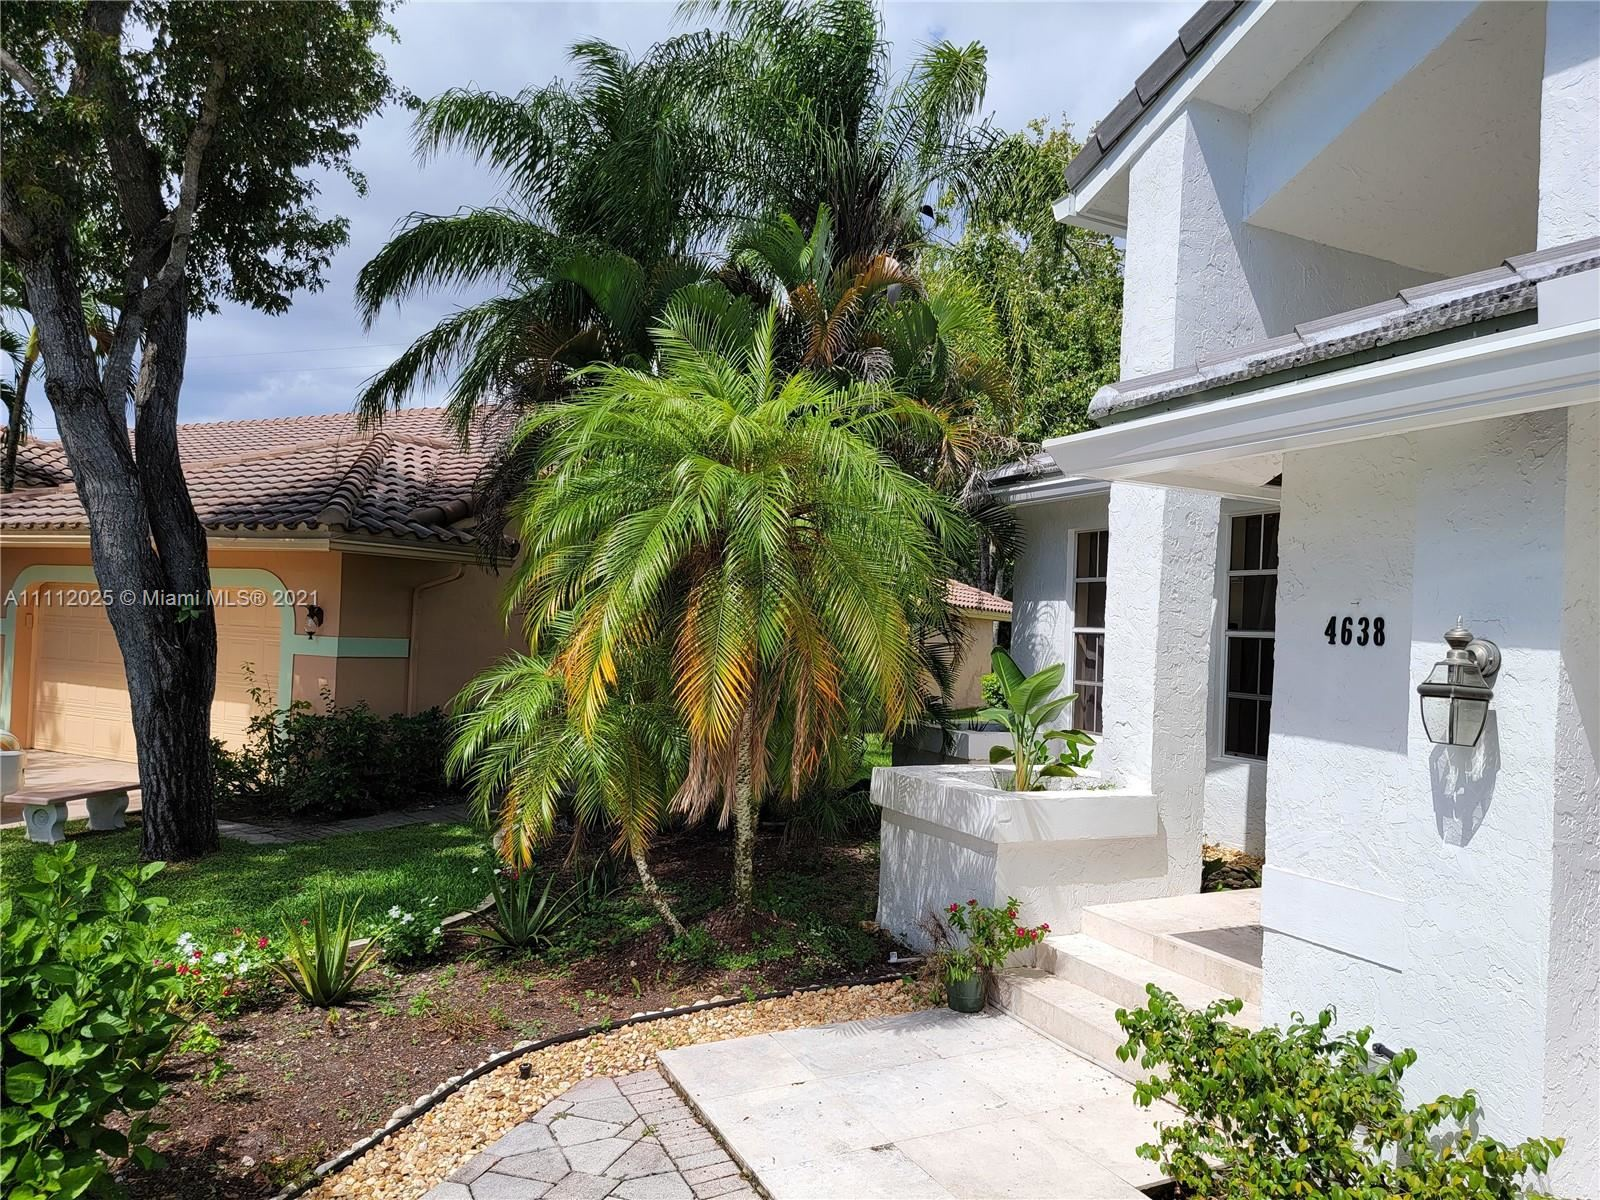 Photo of 4638 Rothschild Dr, Coral Springs, FL 33067 (MLS # A11112025)